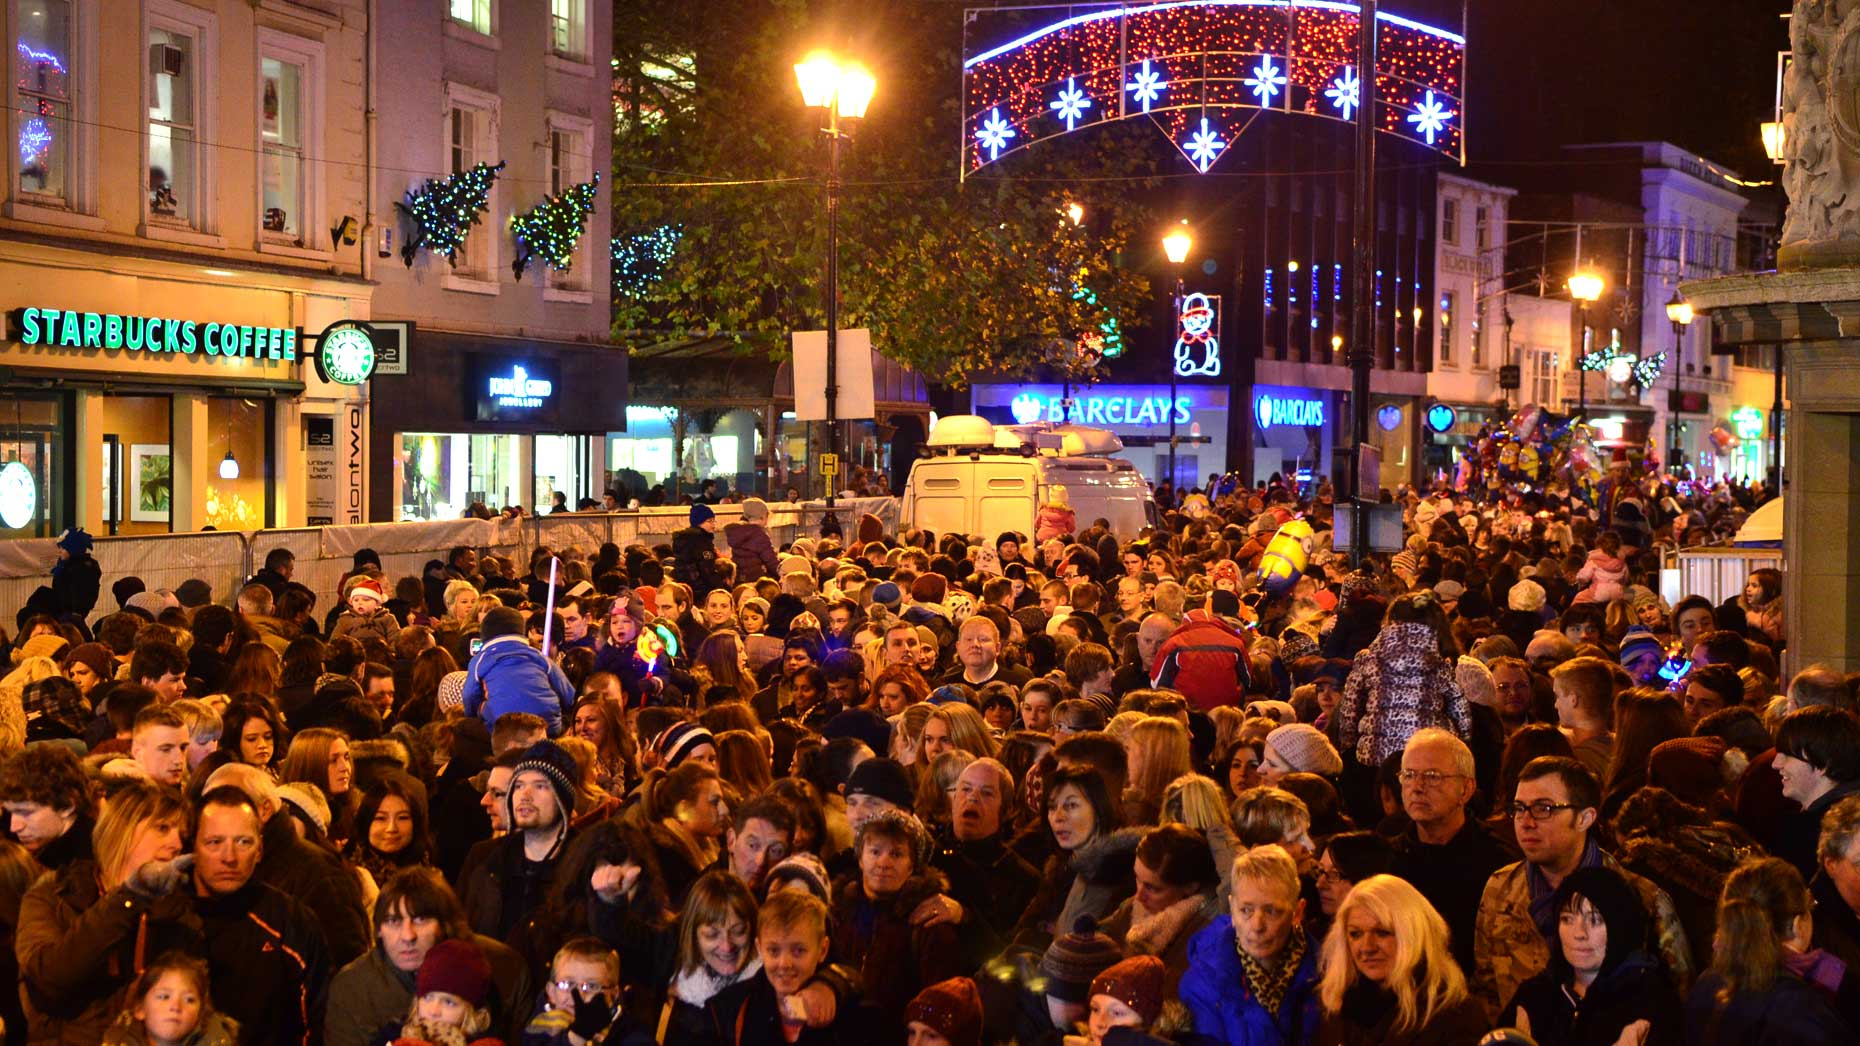 Lights and crowds on Lincoln High Street. Photo: Steve Smailes for The Lincolnite